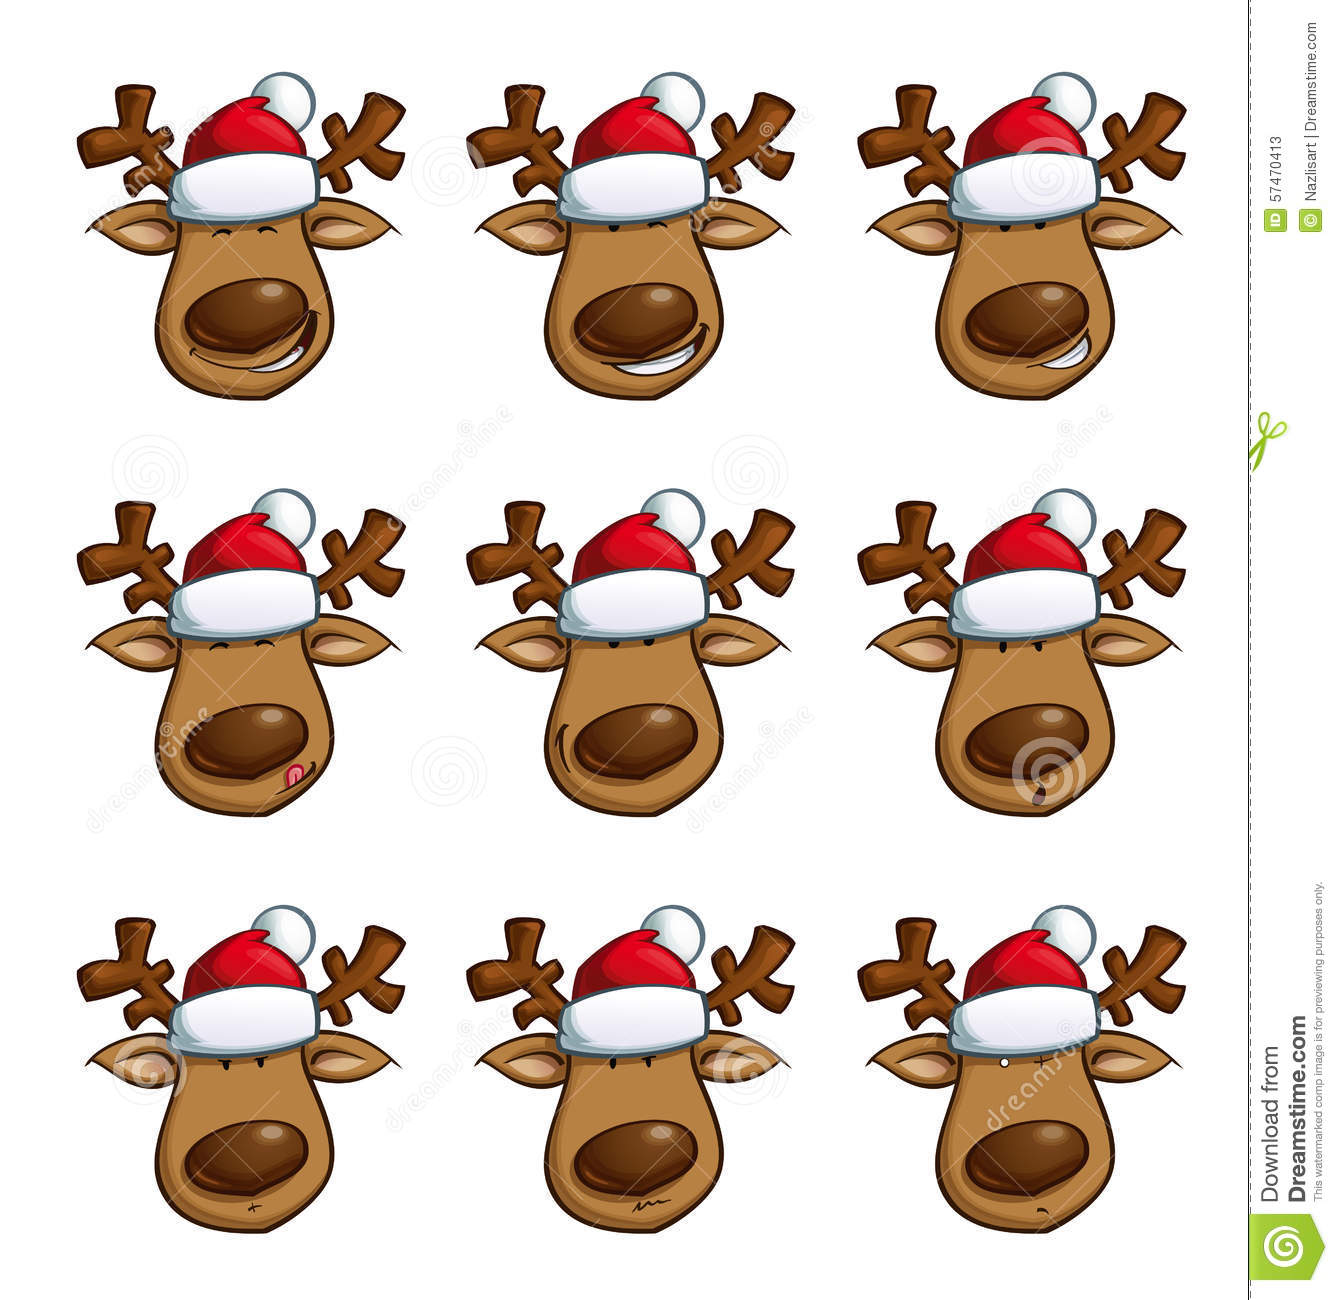 Christmas Elks Expressions Stock Vector. Illustration Of